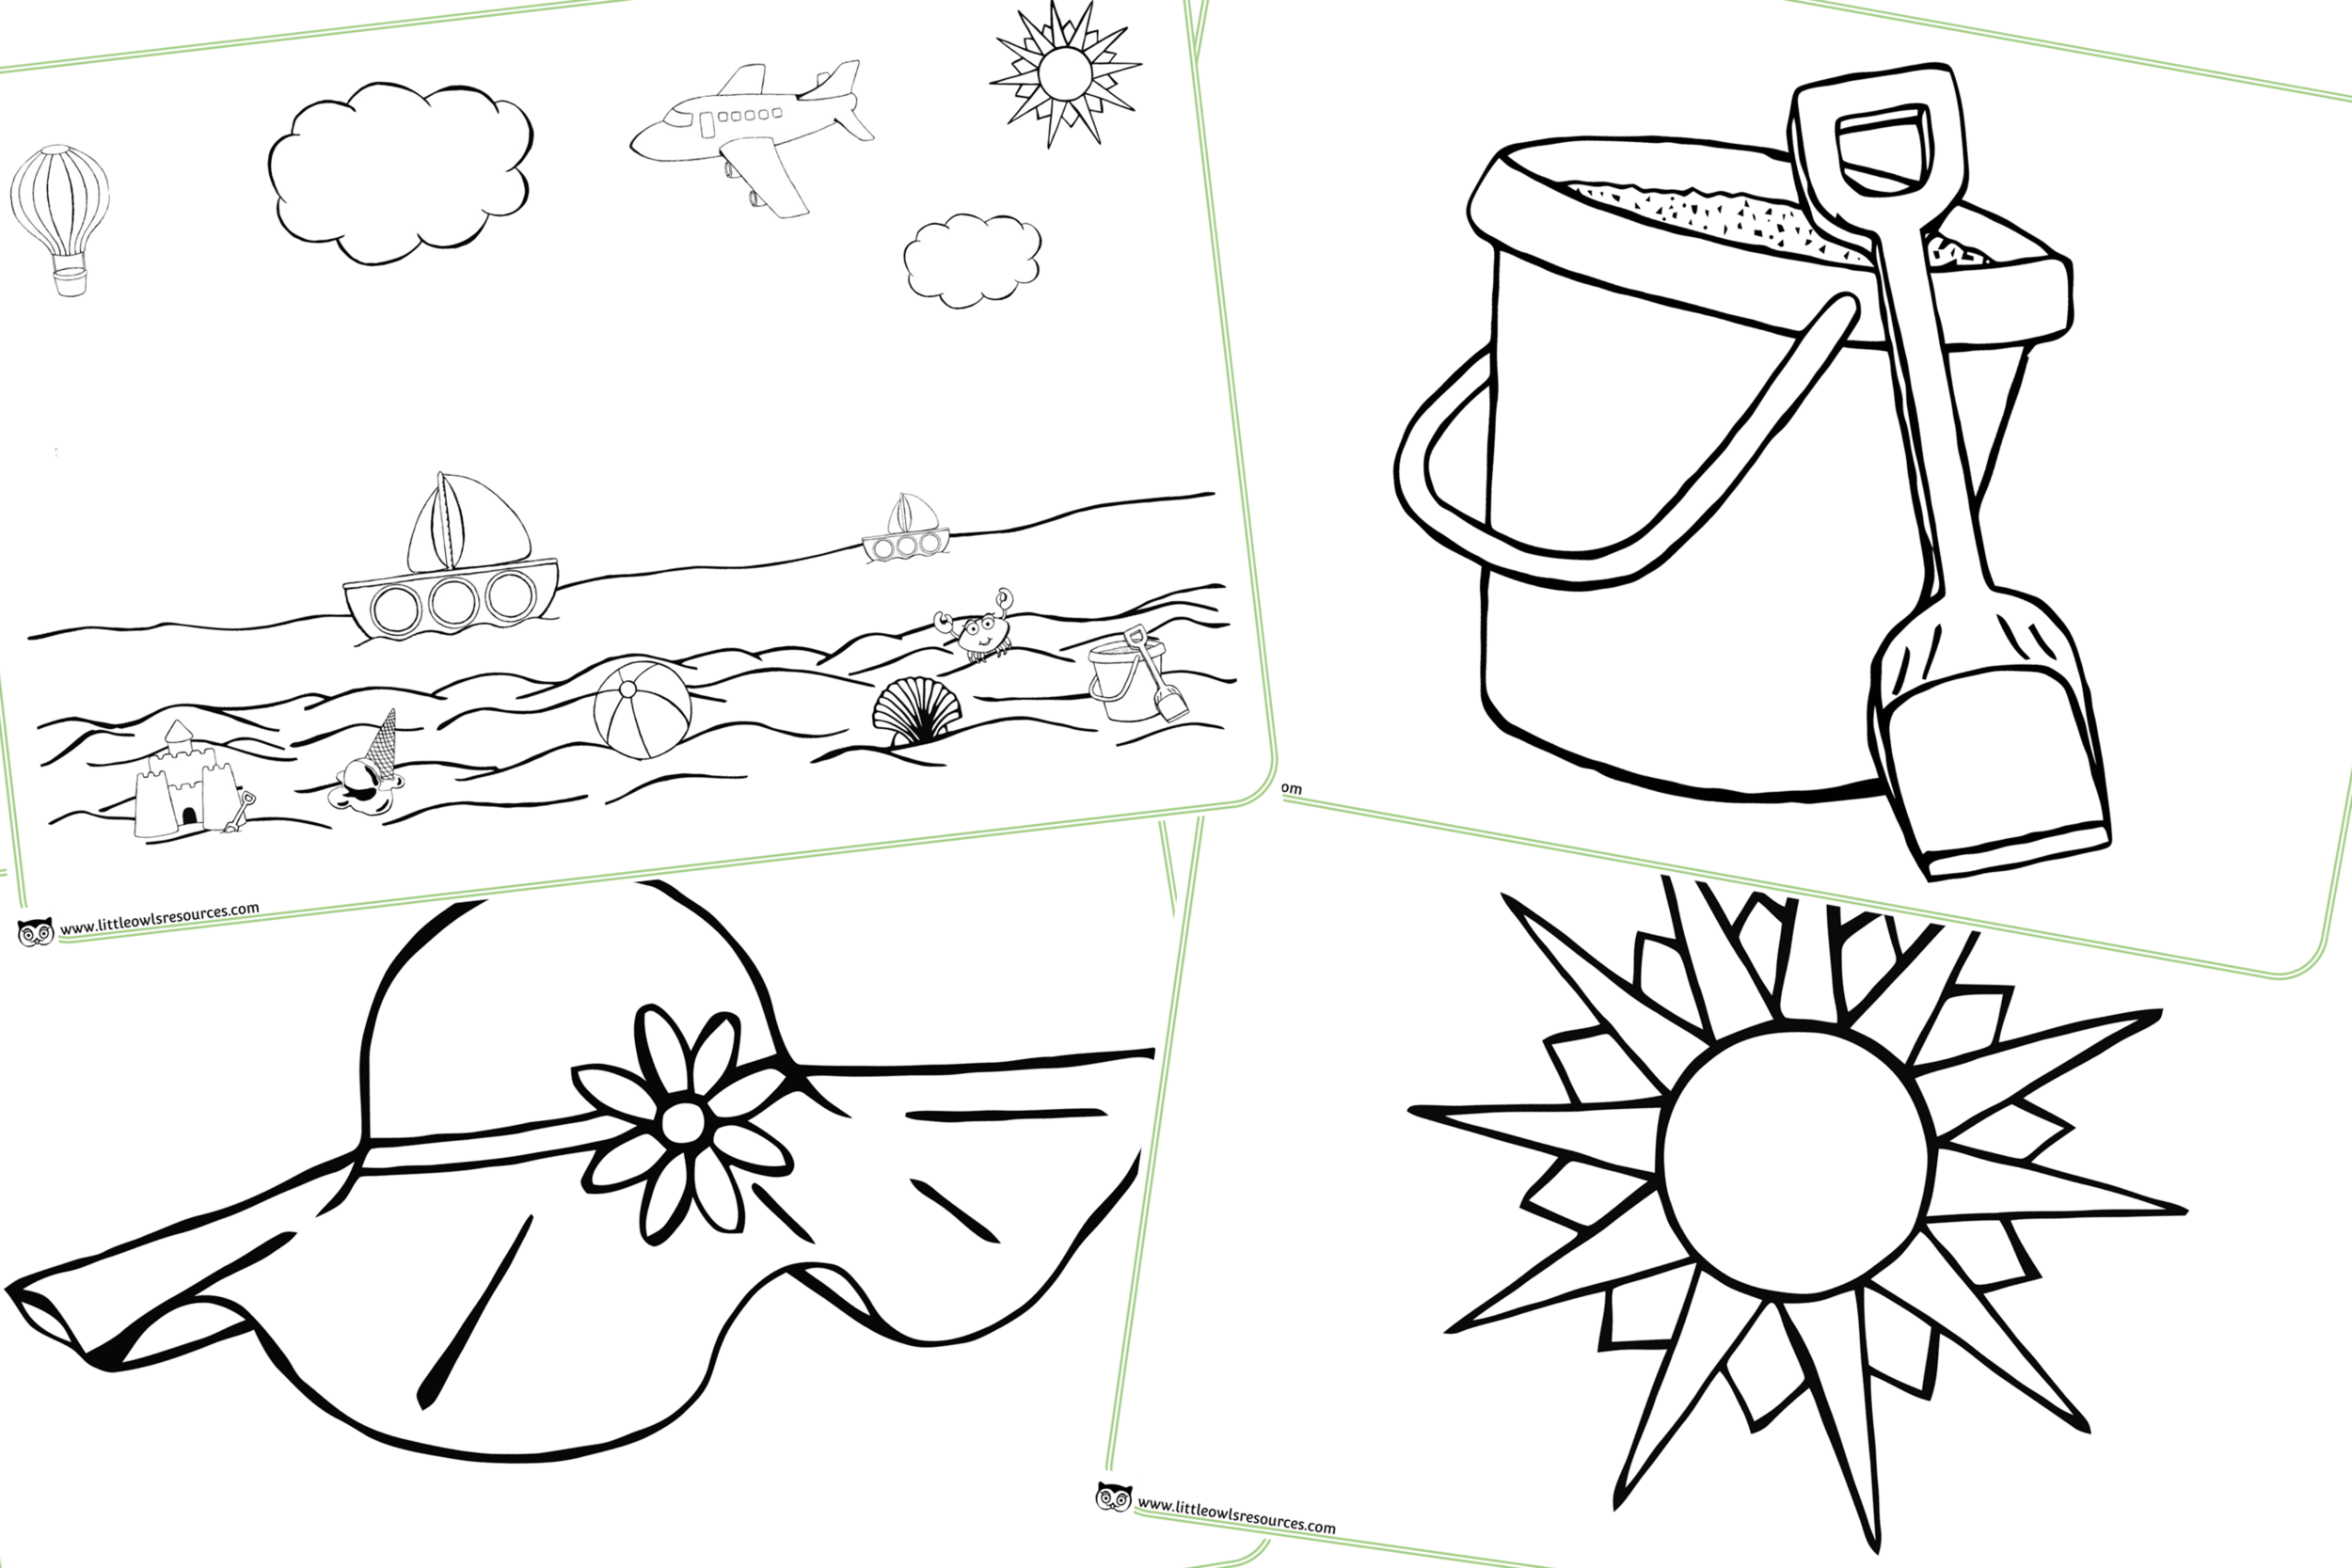 Summer Season/Weather/Beach Colouring Pages/Activity